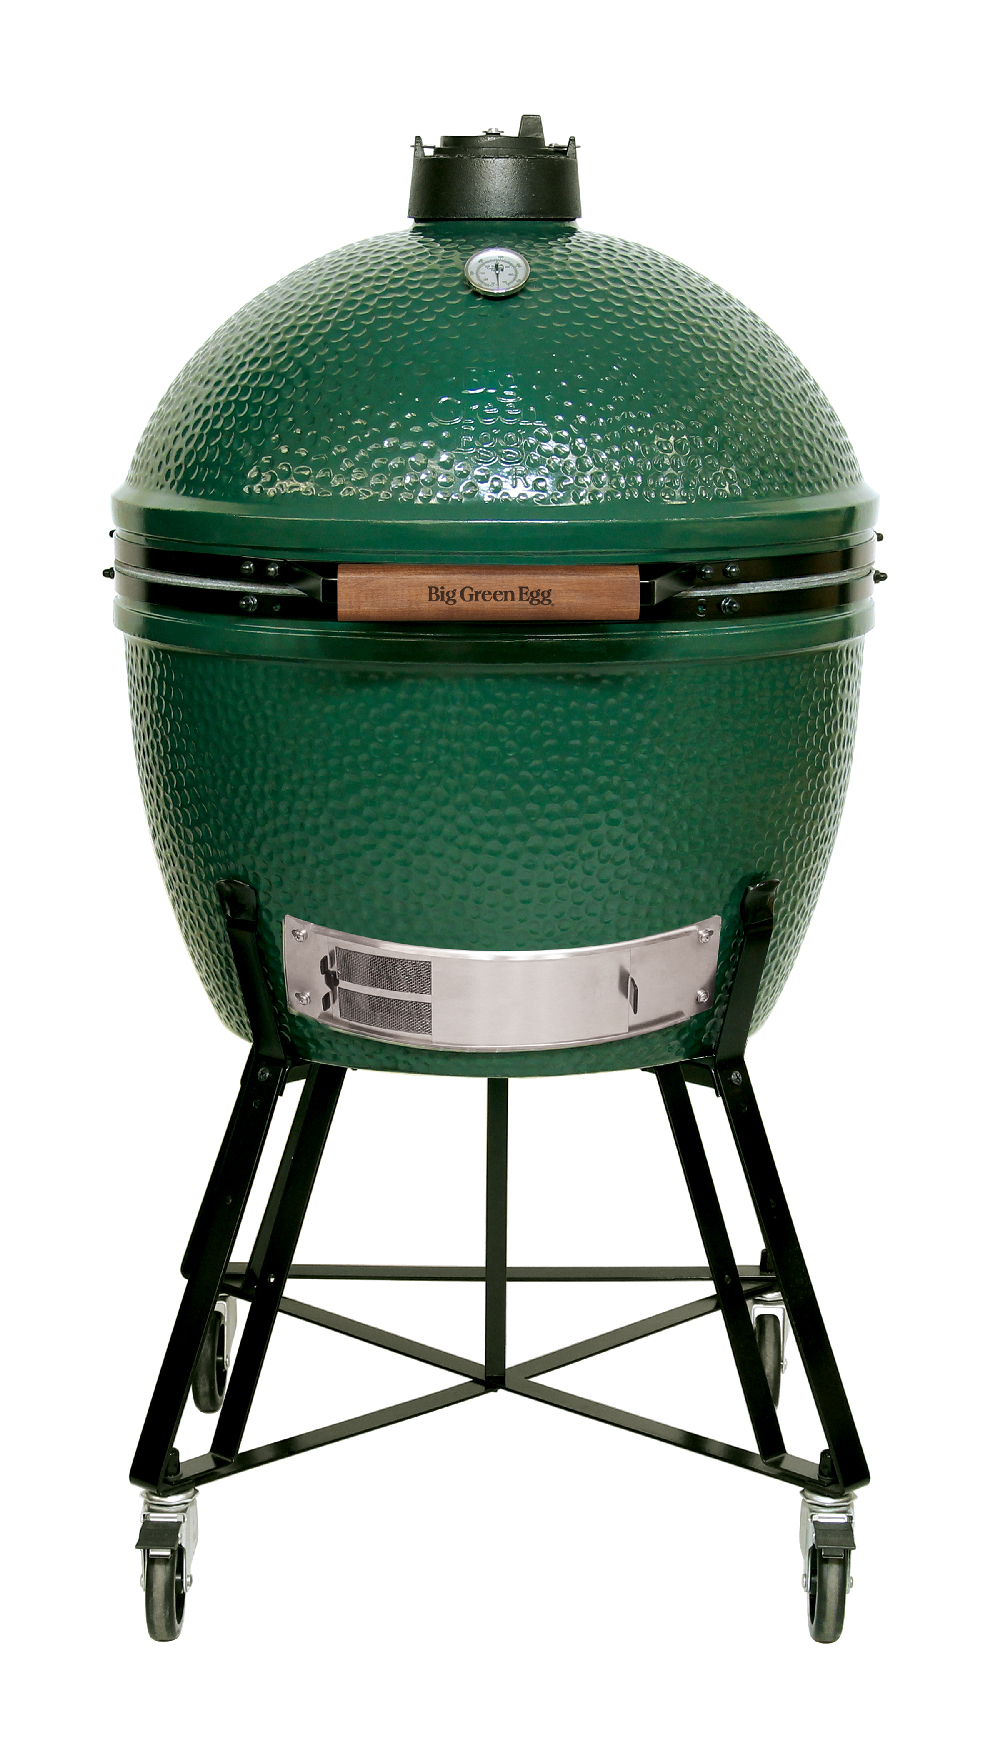 Big Green Egg XL Kamado Grill